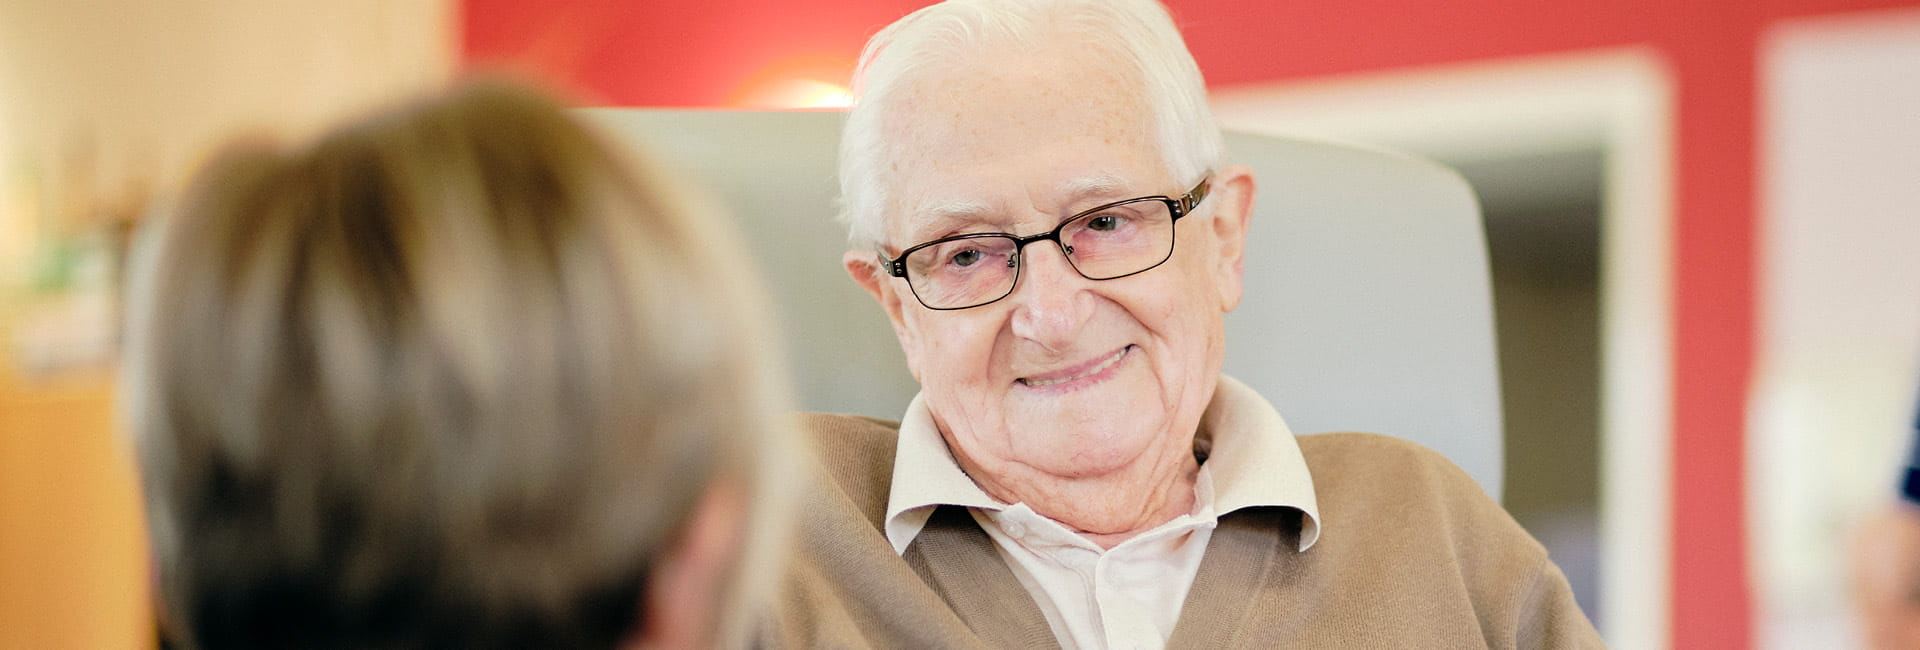 The Myton Hospices - Coventry - Leamington Spa - Rugby - We Cover - Hospice Care - Patient - Coming to Myton